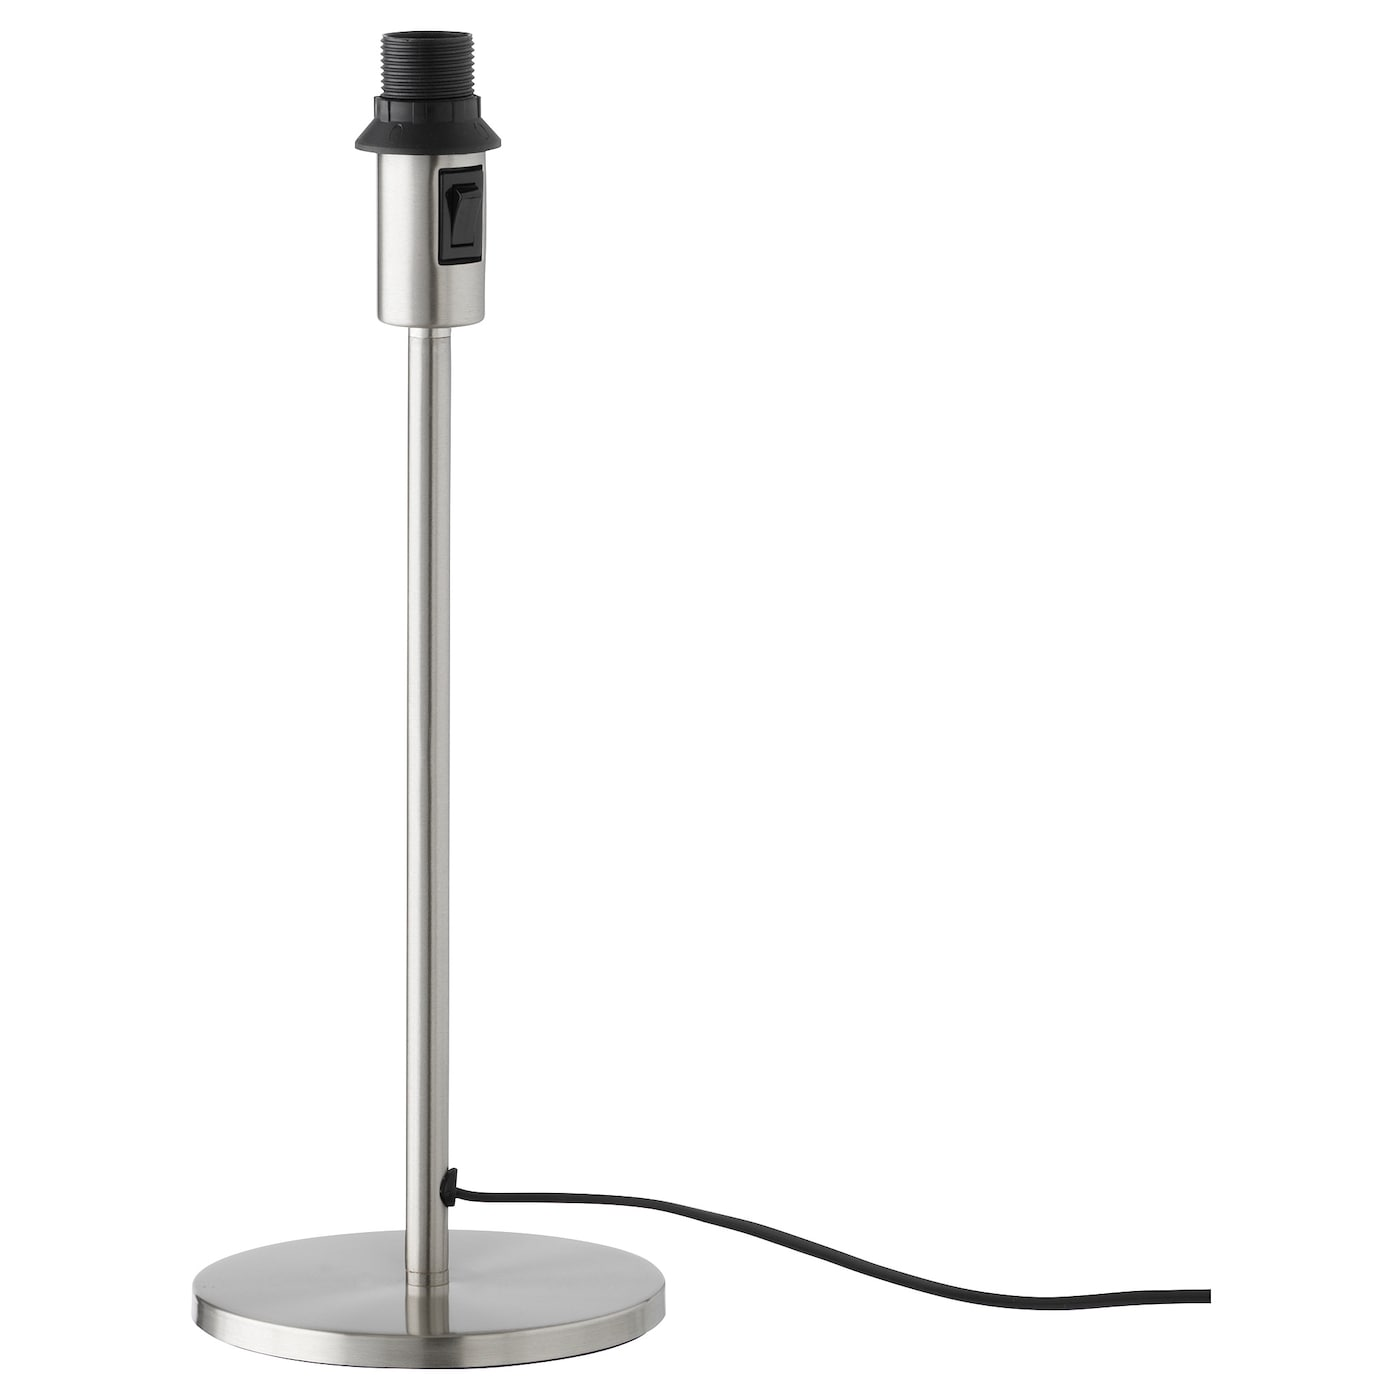 rodd pied de lampe de table nickel 35 cm ikea. Black Bedroom Furniture Sets. Home Design Ideas